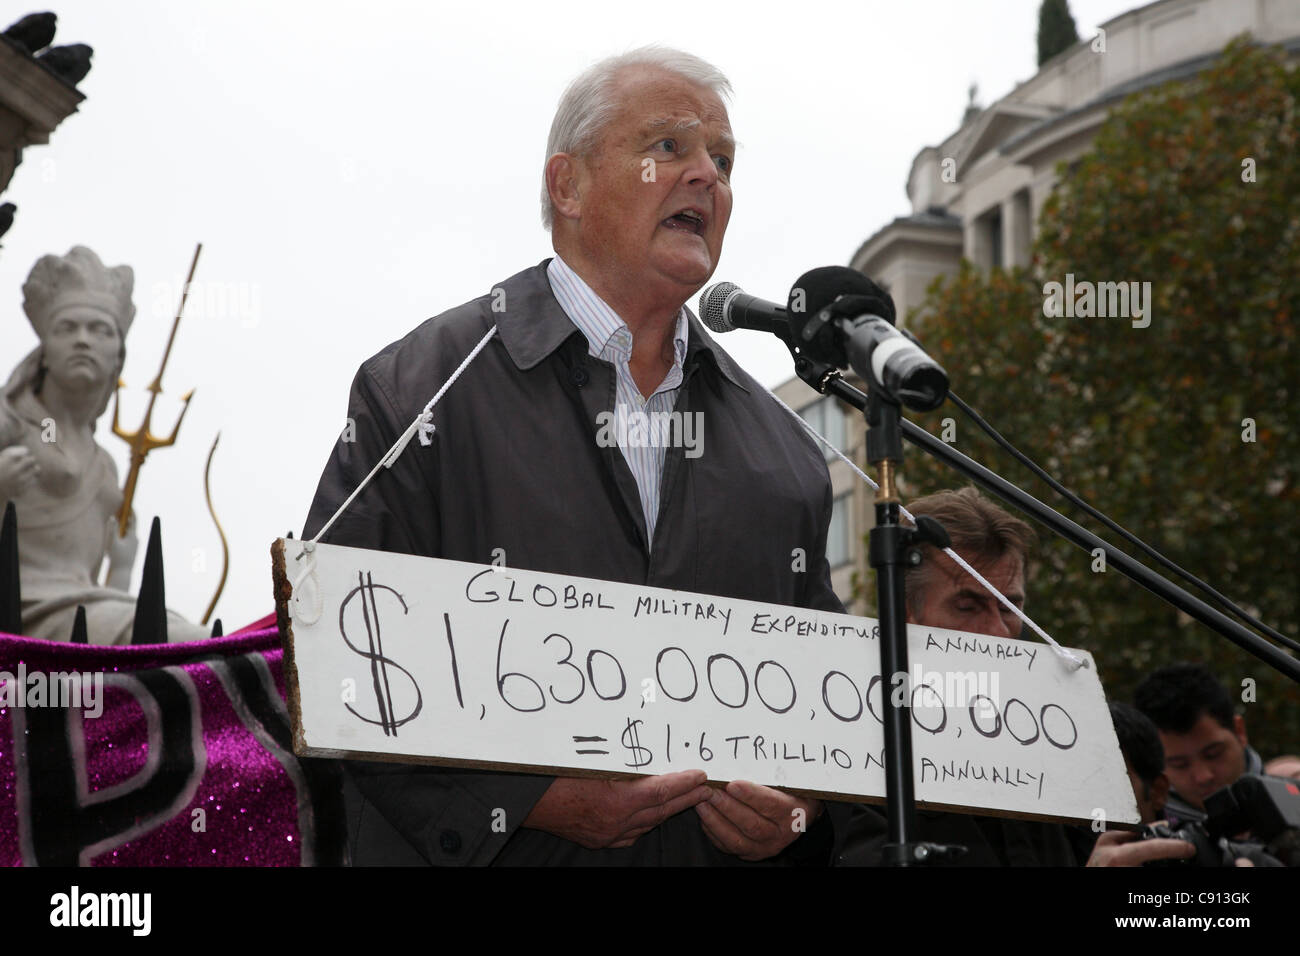 Bruce Kent making a speech at the occupy London protest at St Paul's, London, Uk. - Stock Image